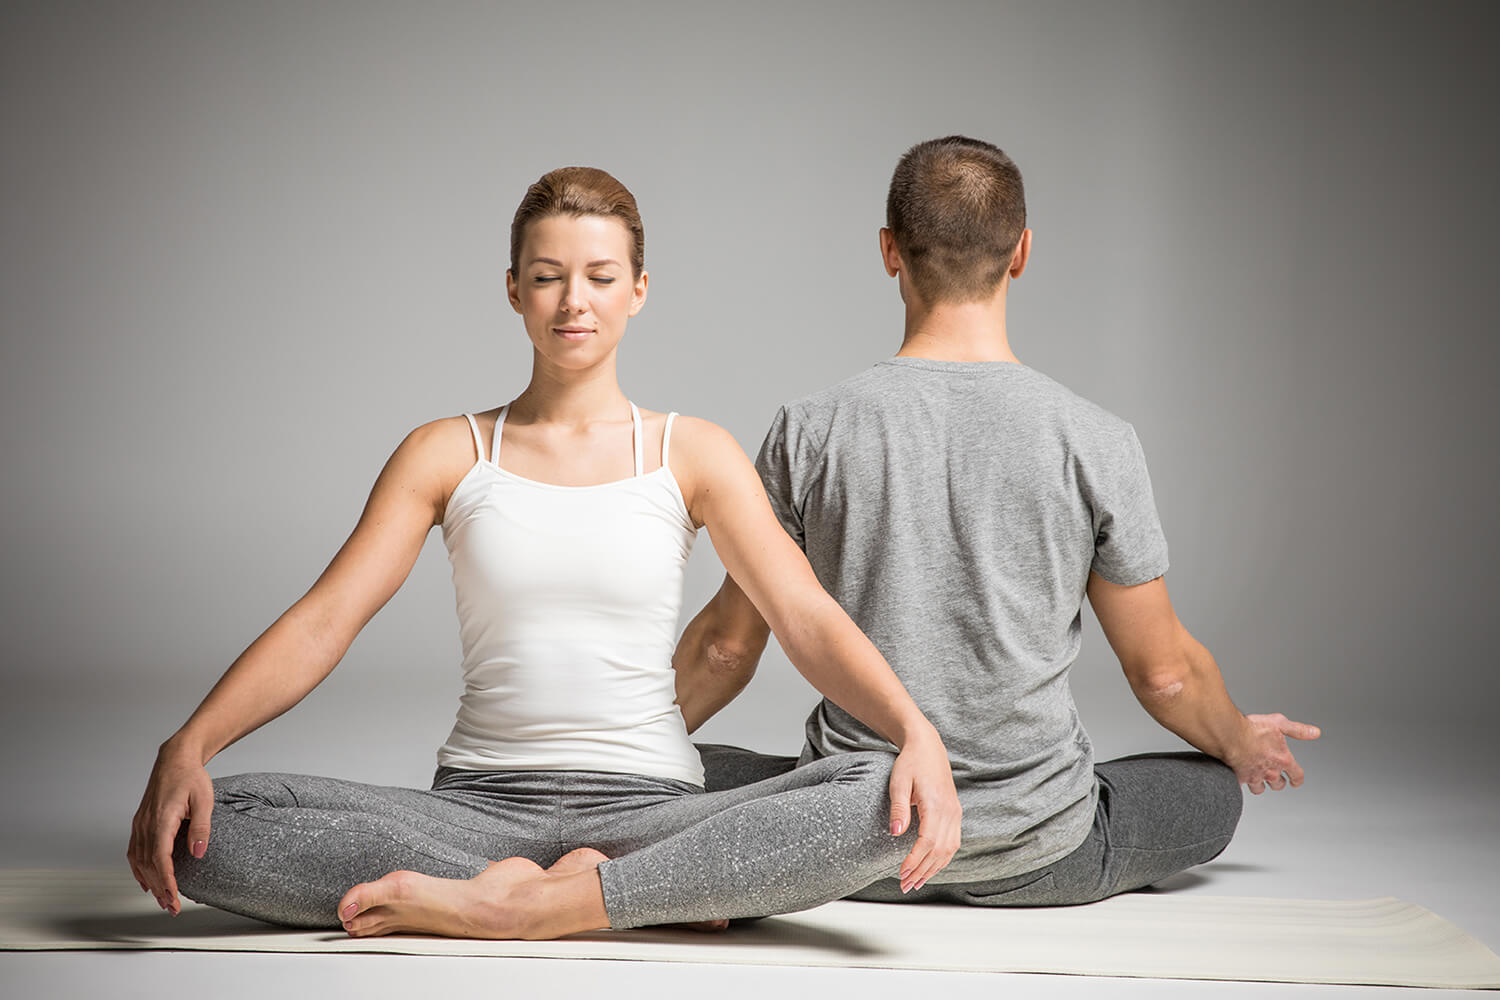 Yoga and Meditation: This is Your Brain on Yoga